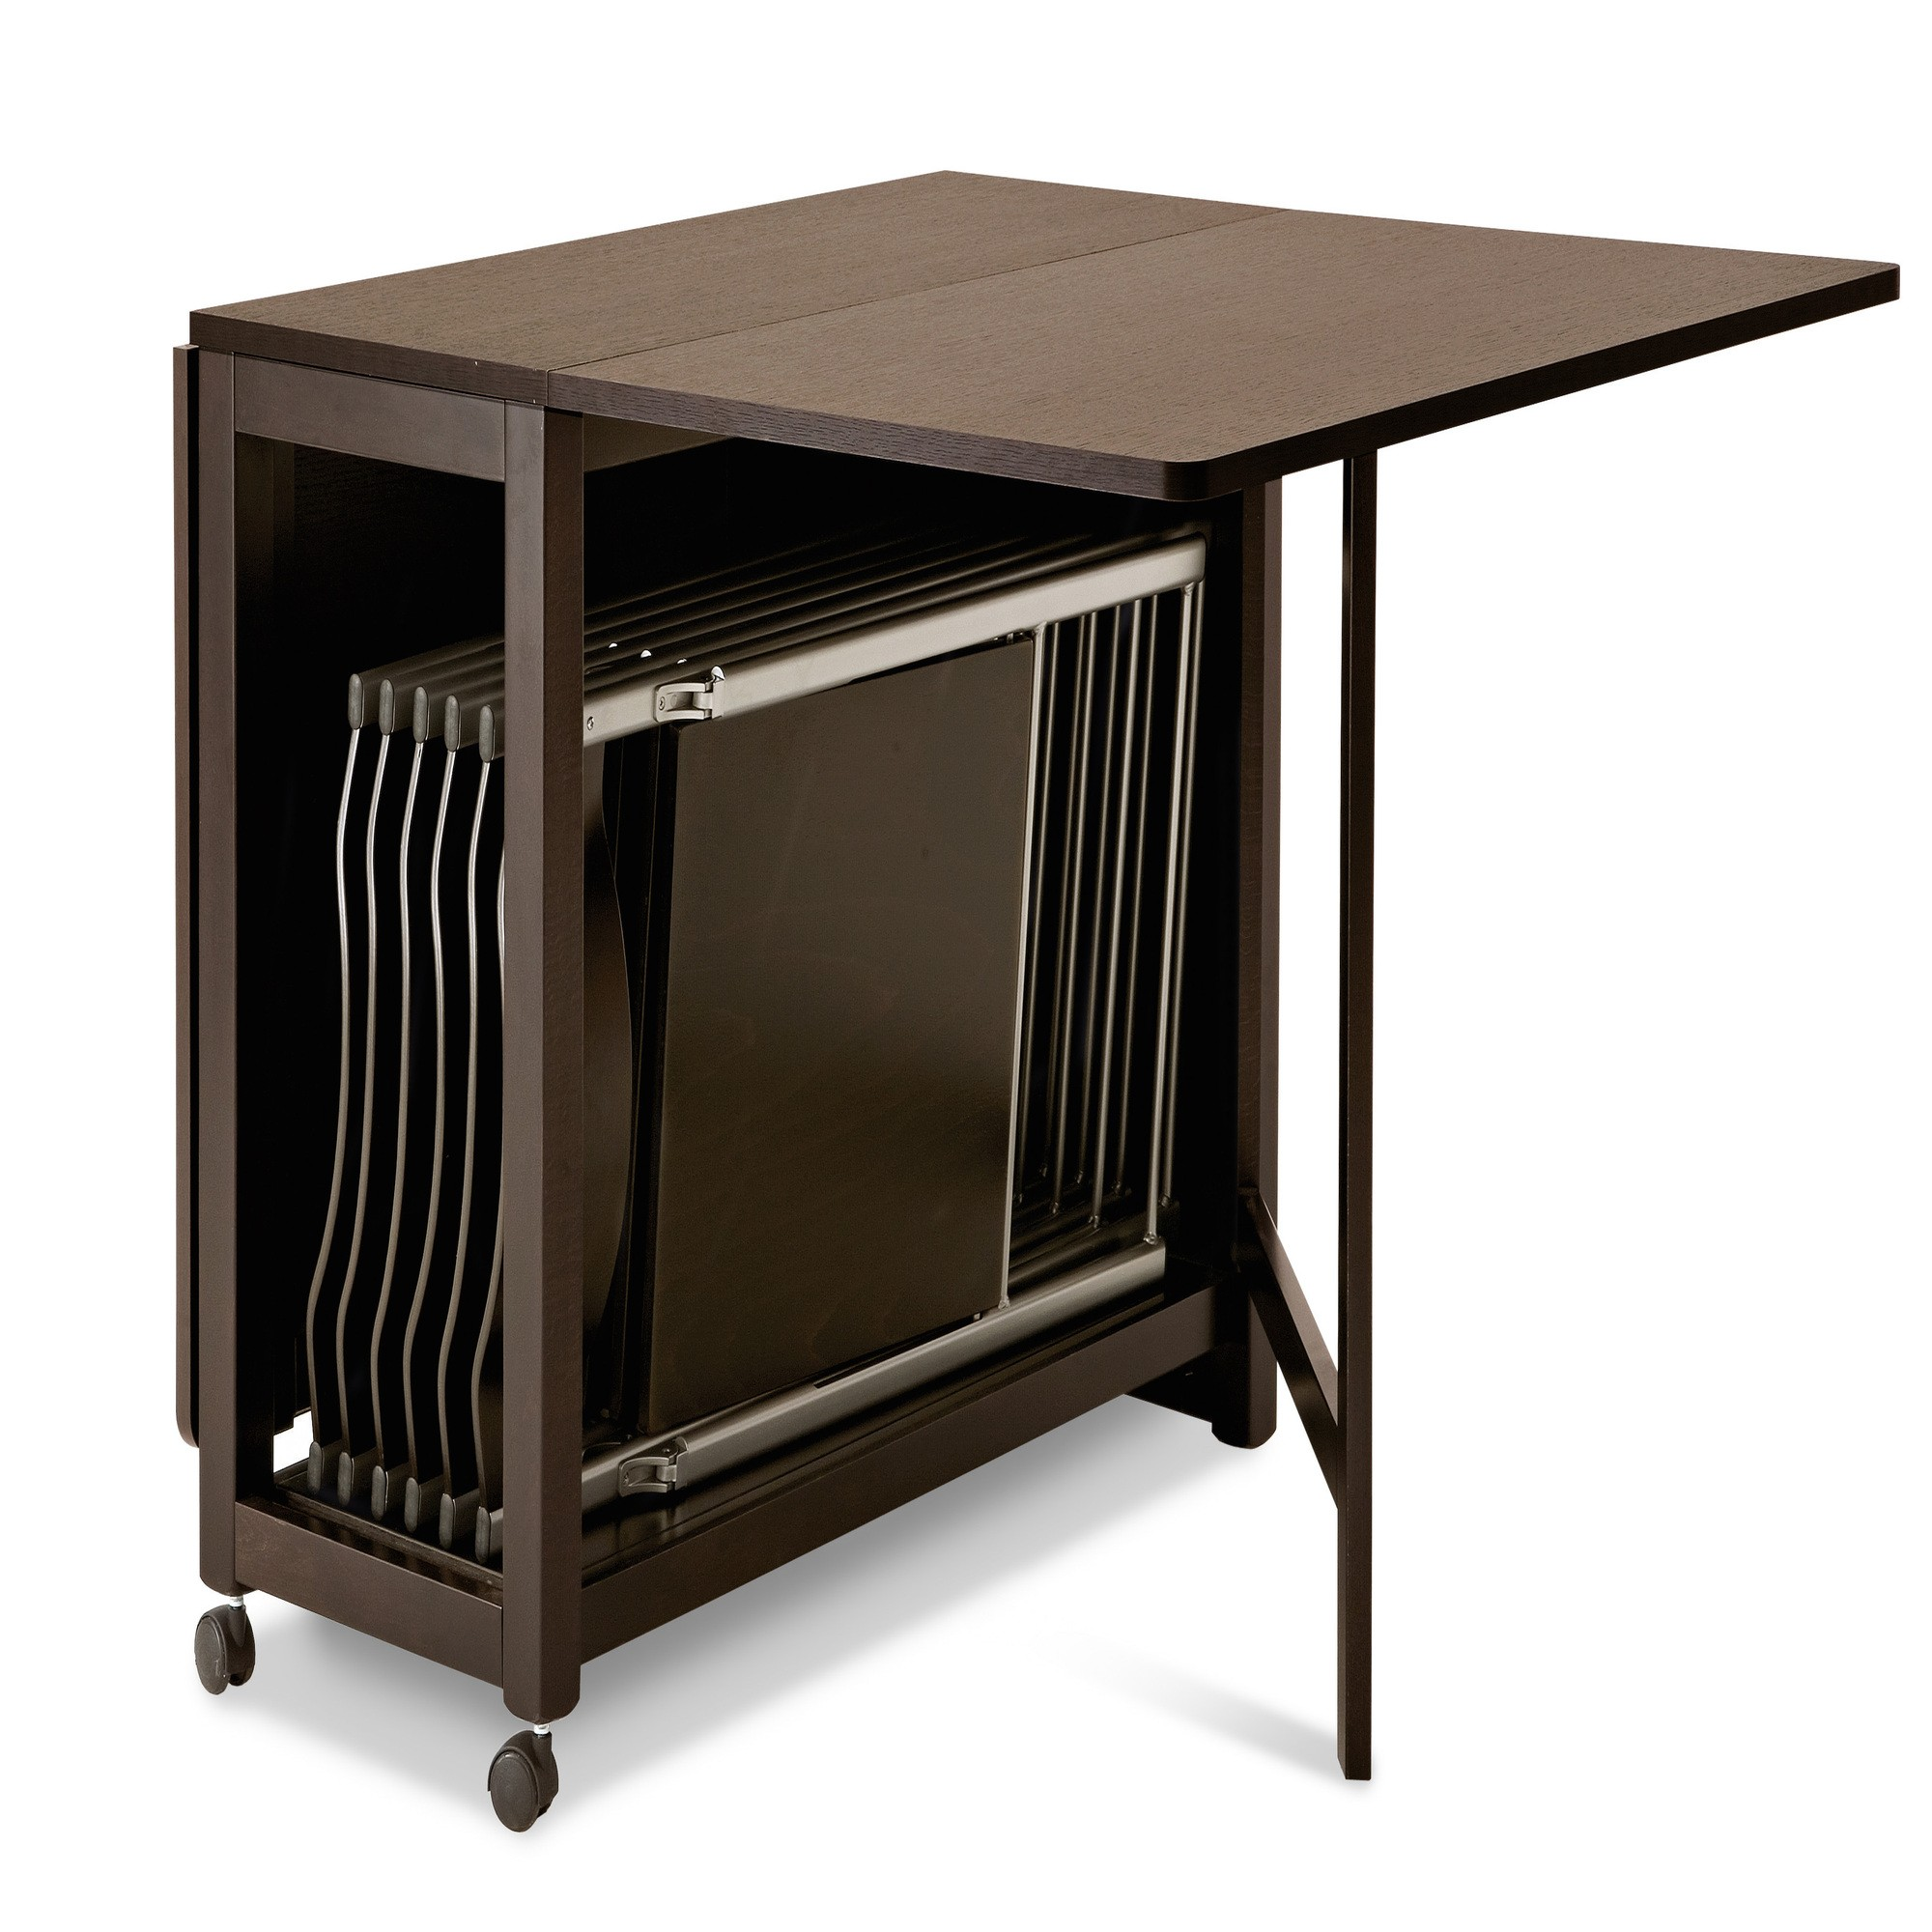 Folding Table Of Space Saver Dining Set With Rolling Idea